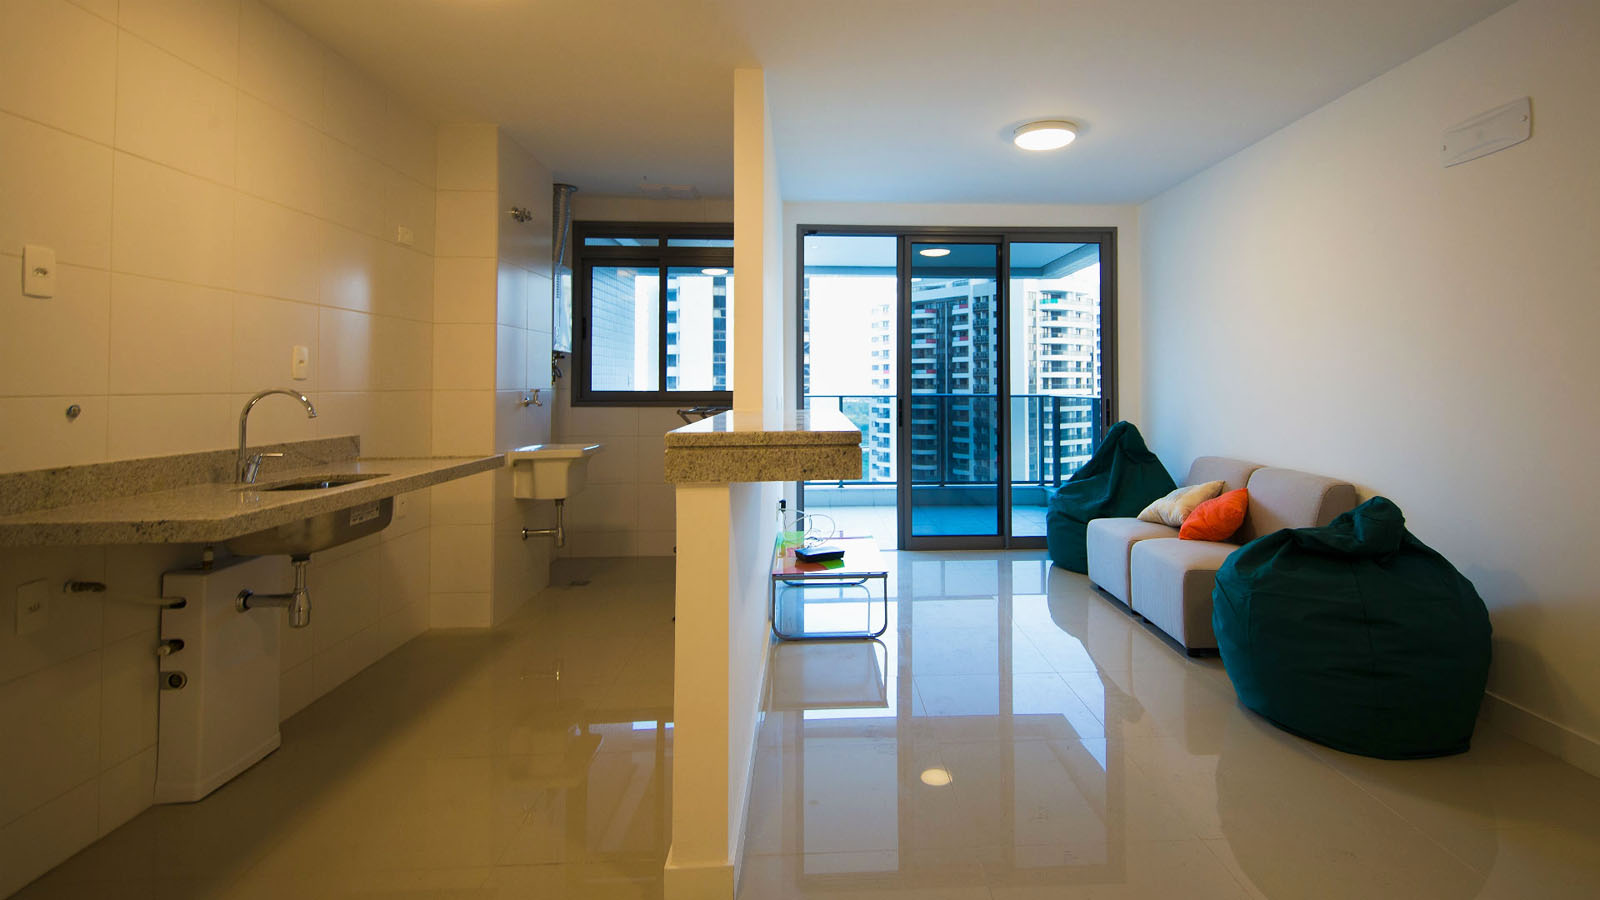 Rio Olympic Athletes Apartment